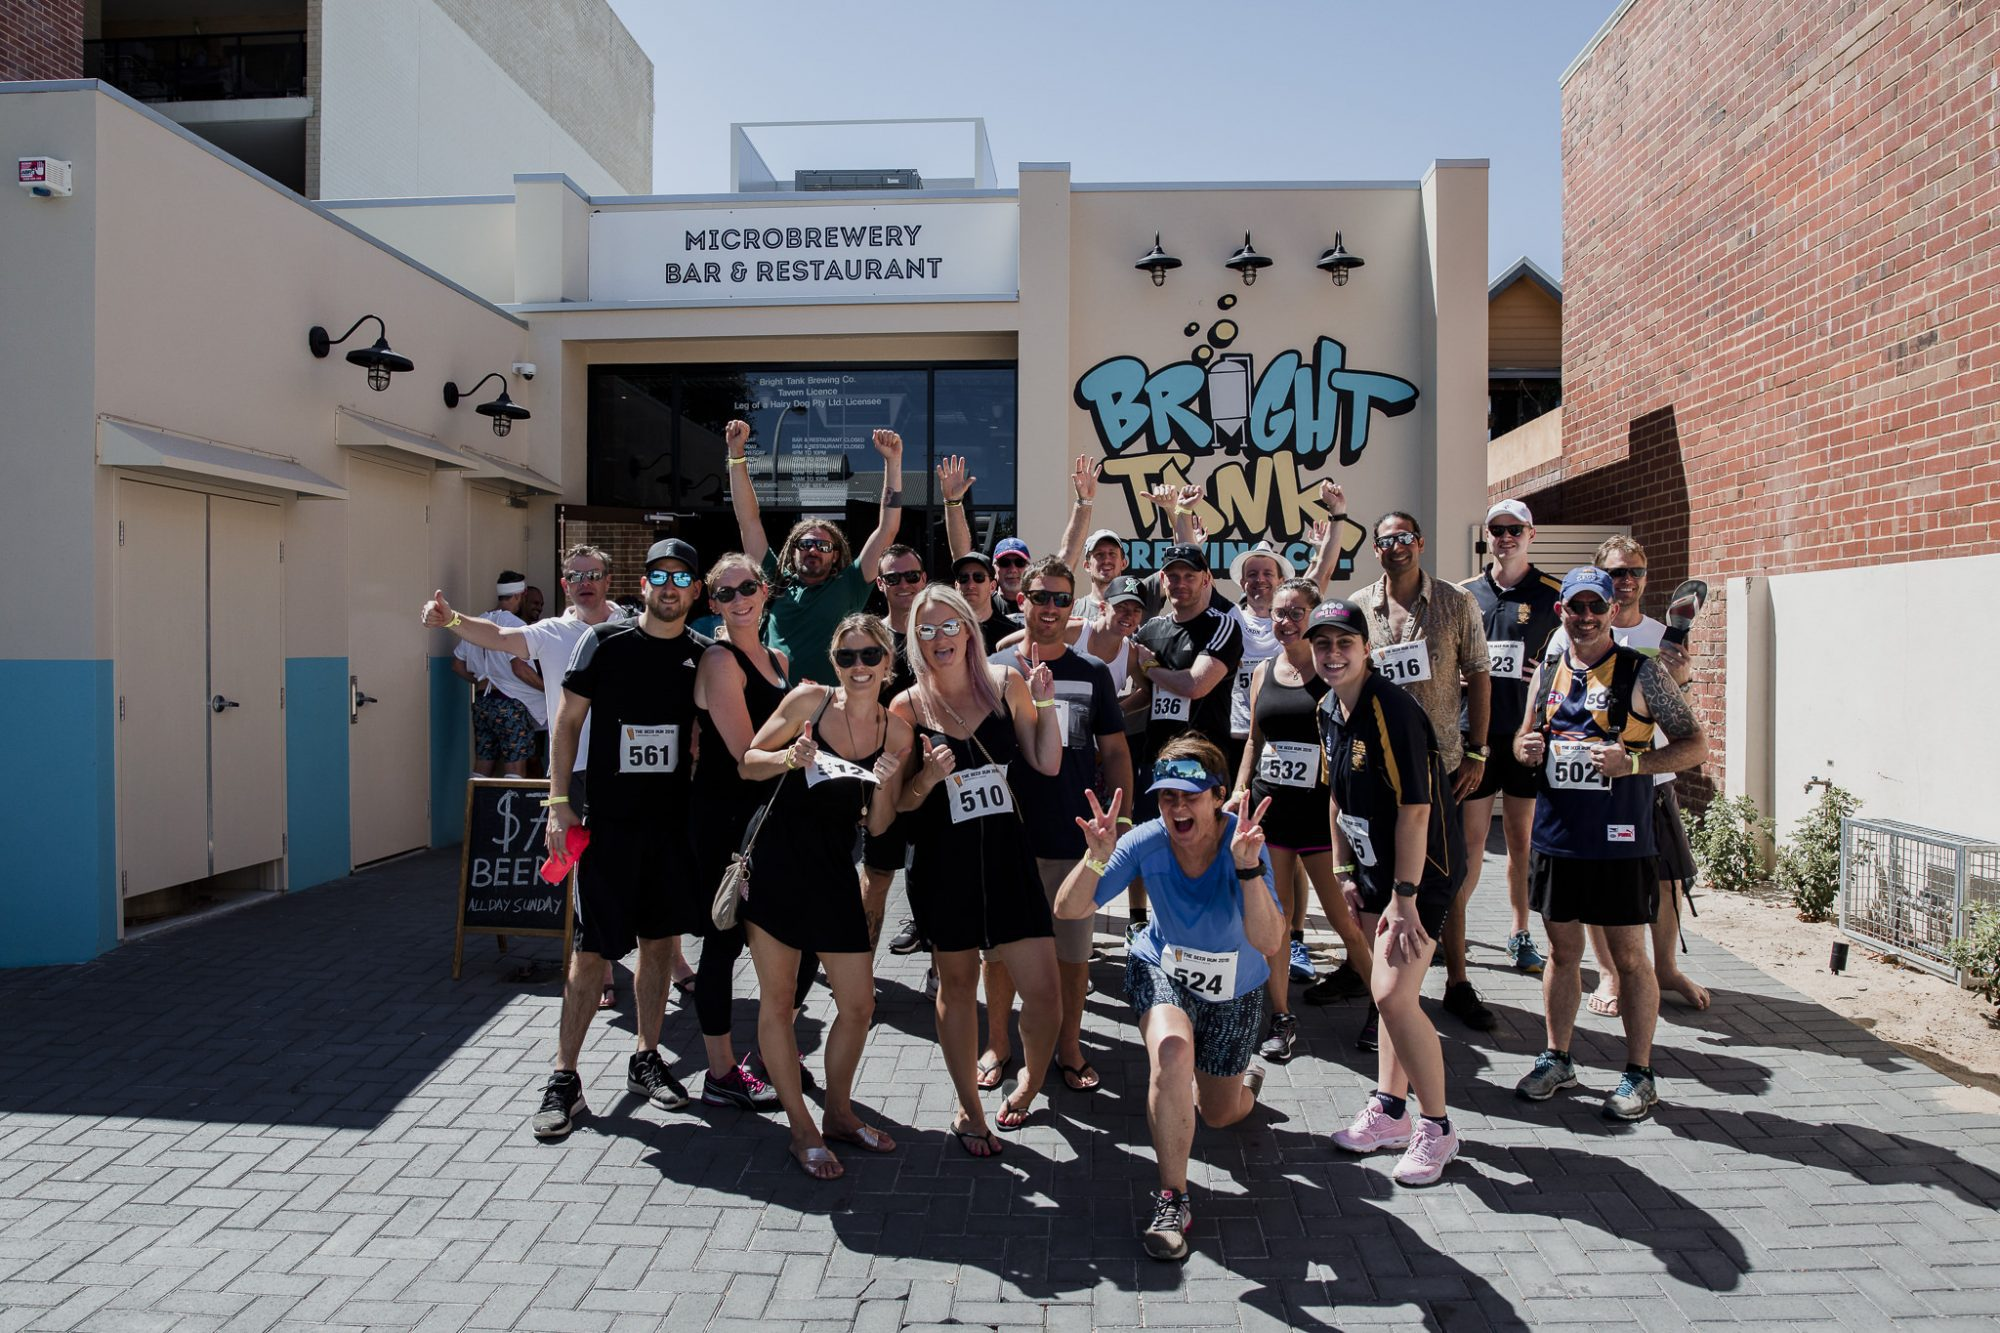 Event photography for The Beer Run in Perth by commercial photographer Dennis Tan Creative